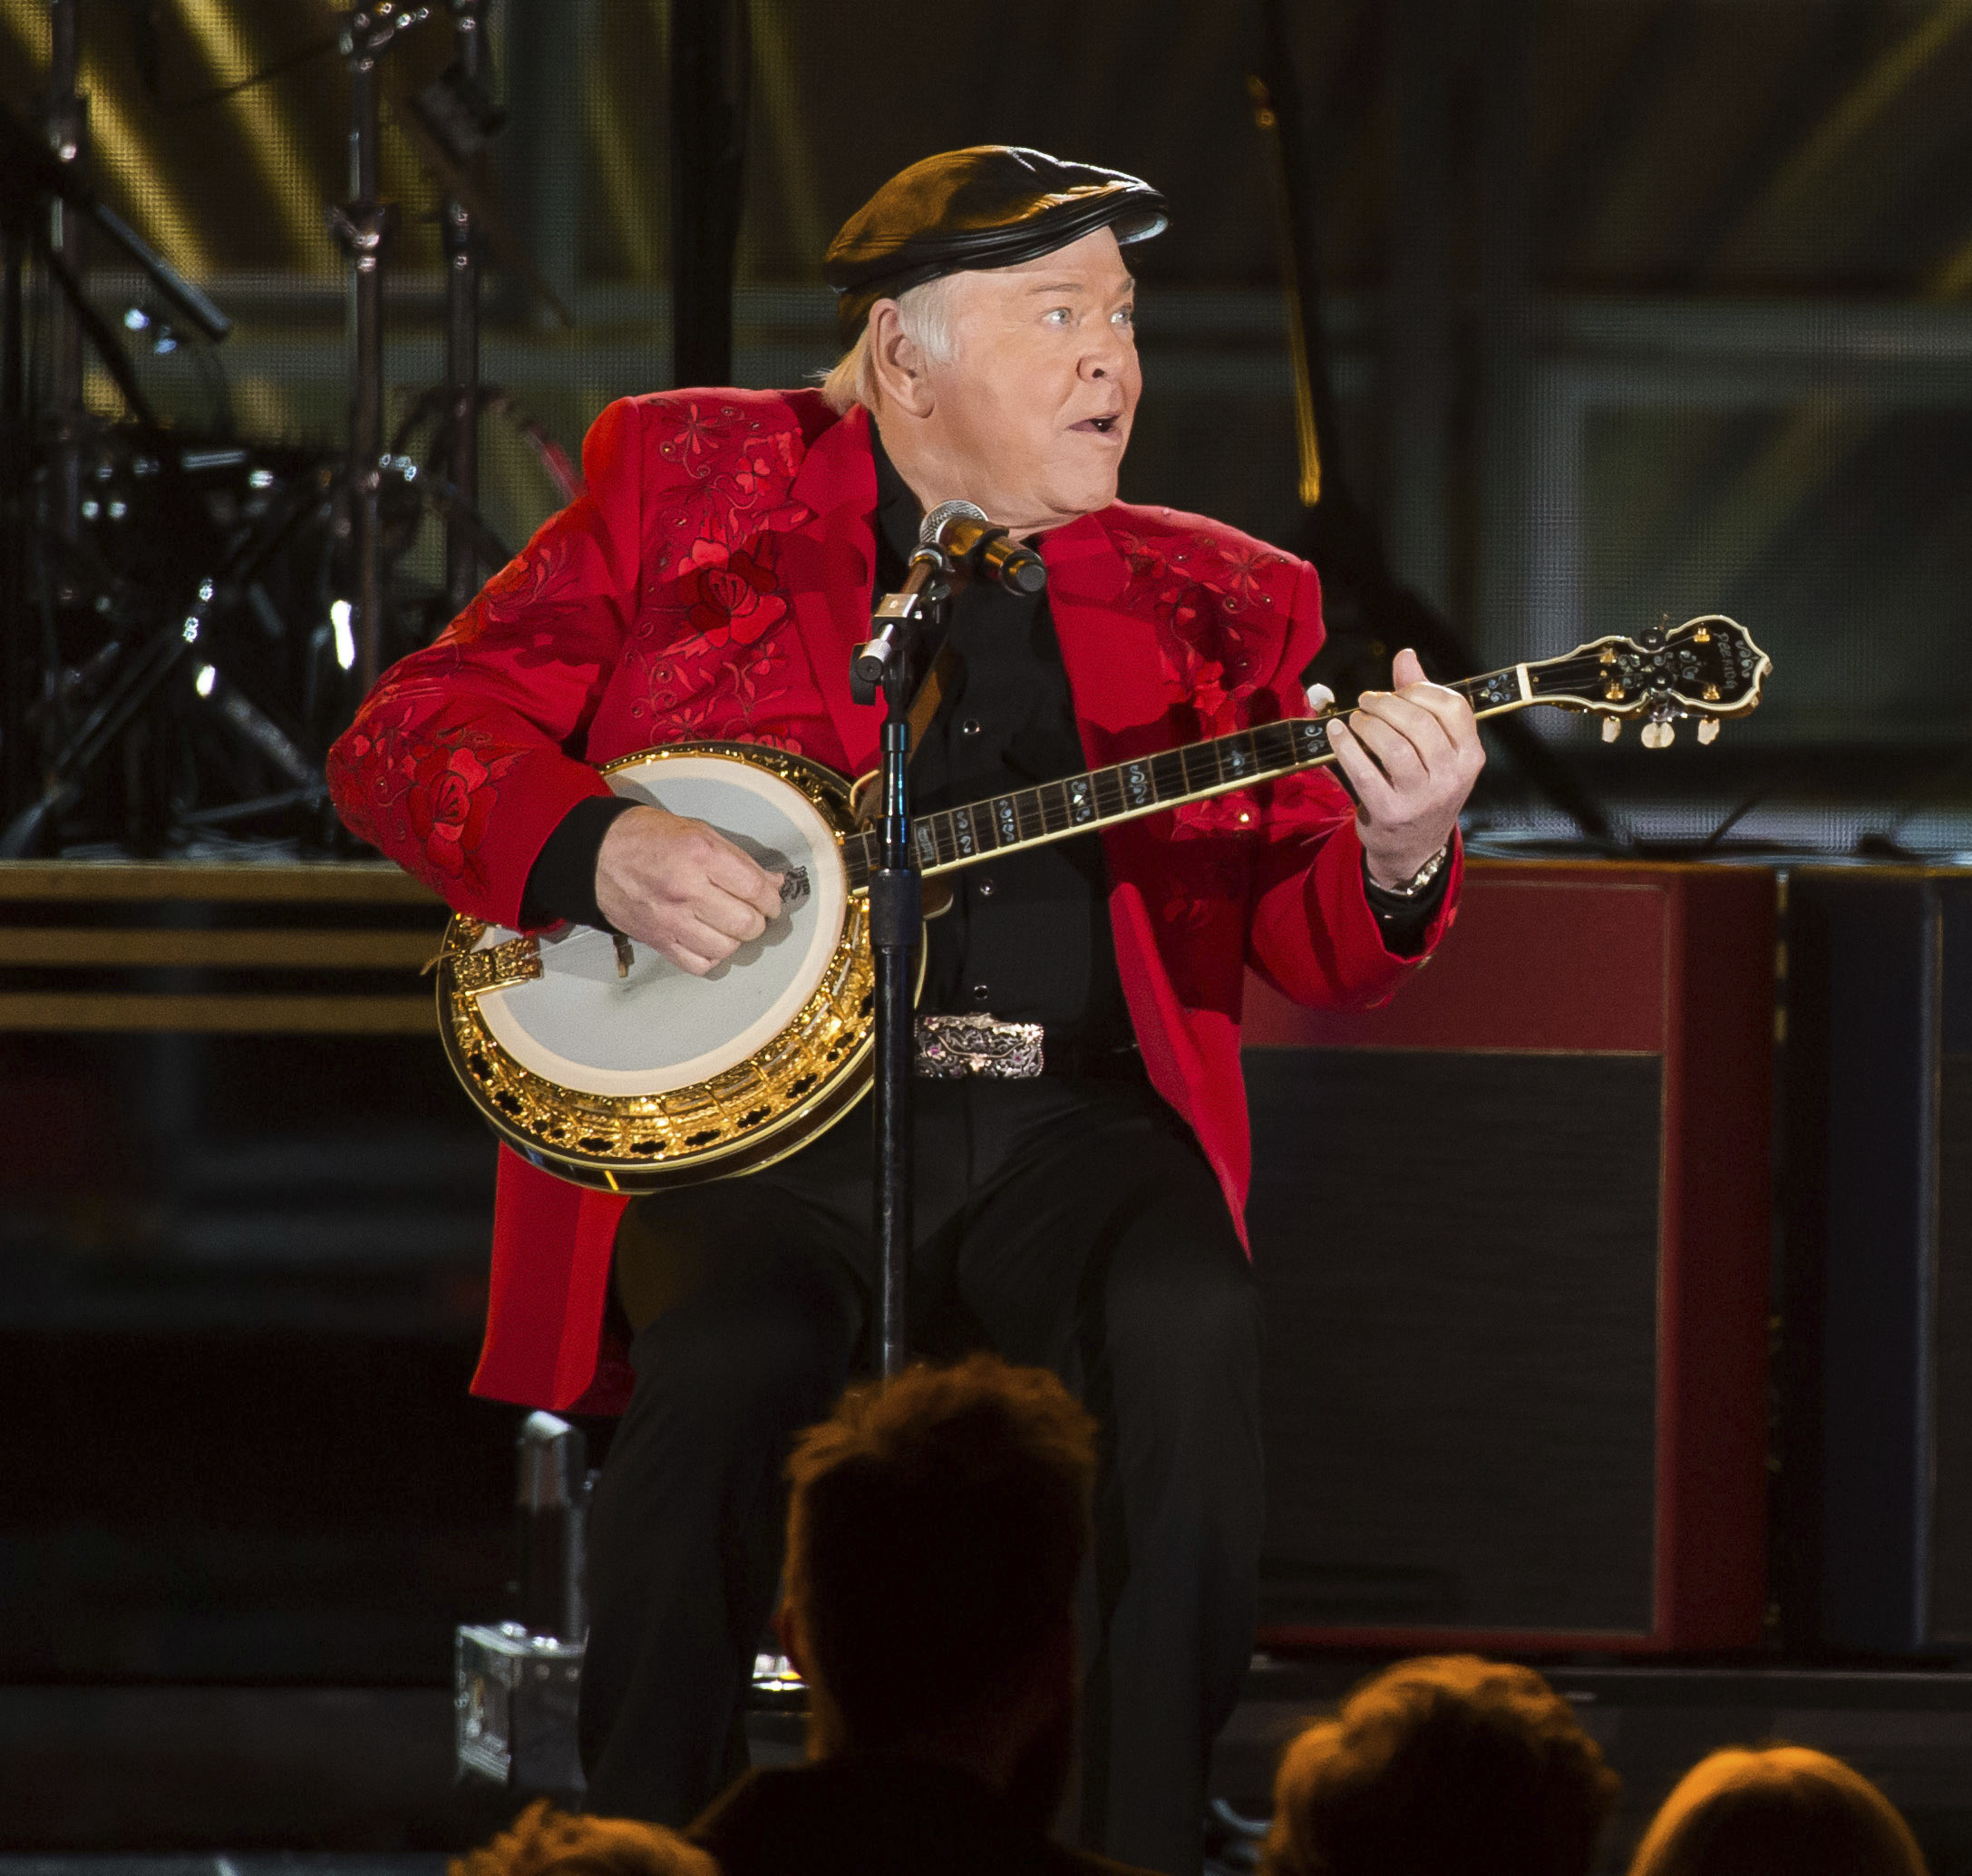 <div class='meta'><div class='origin-logo' data-origin='none'></div><span class='caption-text' data-credit='Charles Sykes/Invision/AP'>Roy Clark, a country star known for headlining the TV show ''Hee Haw,'' died on Nov. 15 at age 85.</span></div>